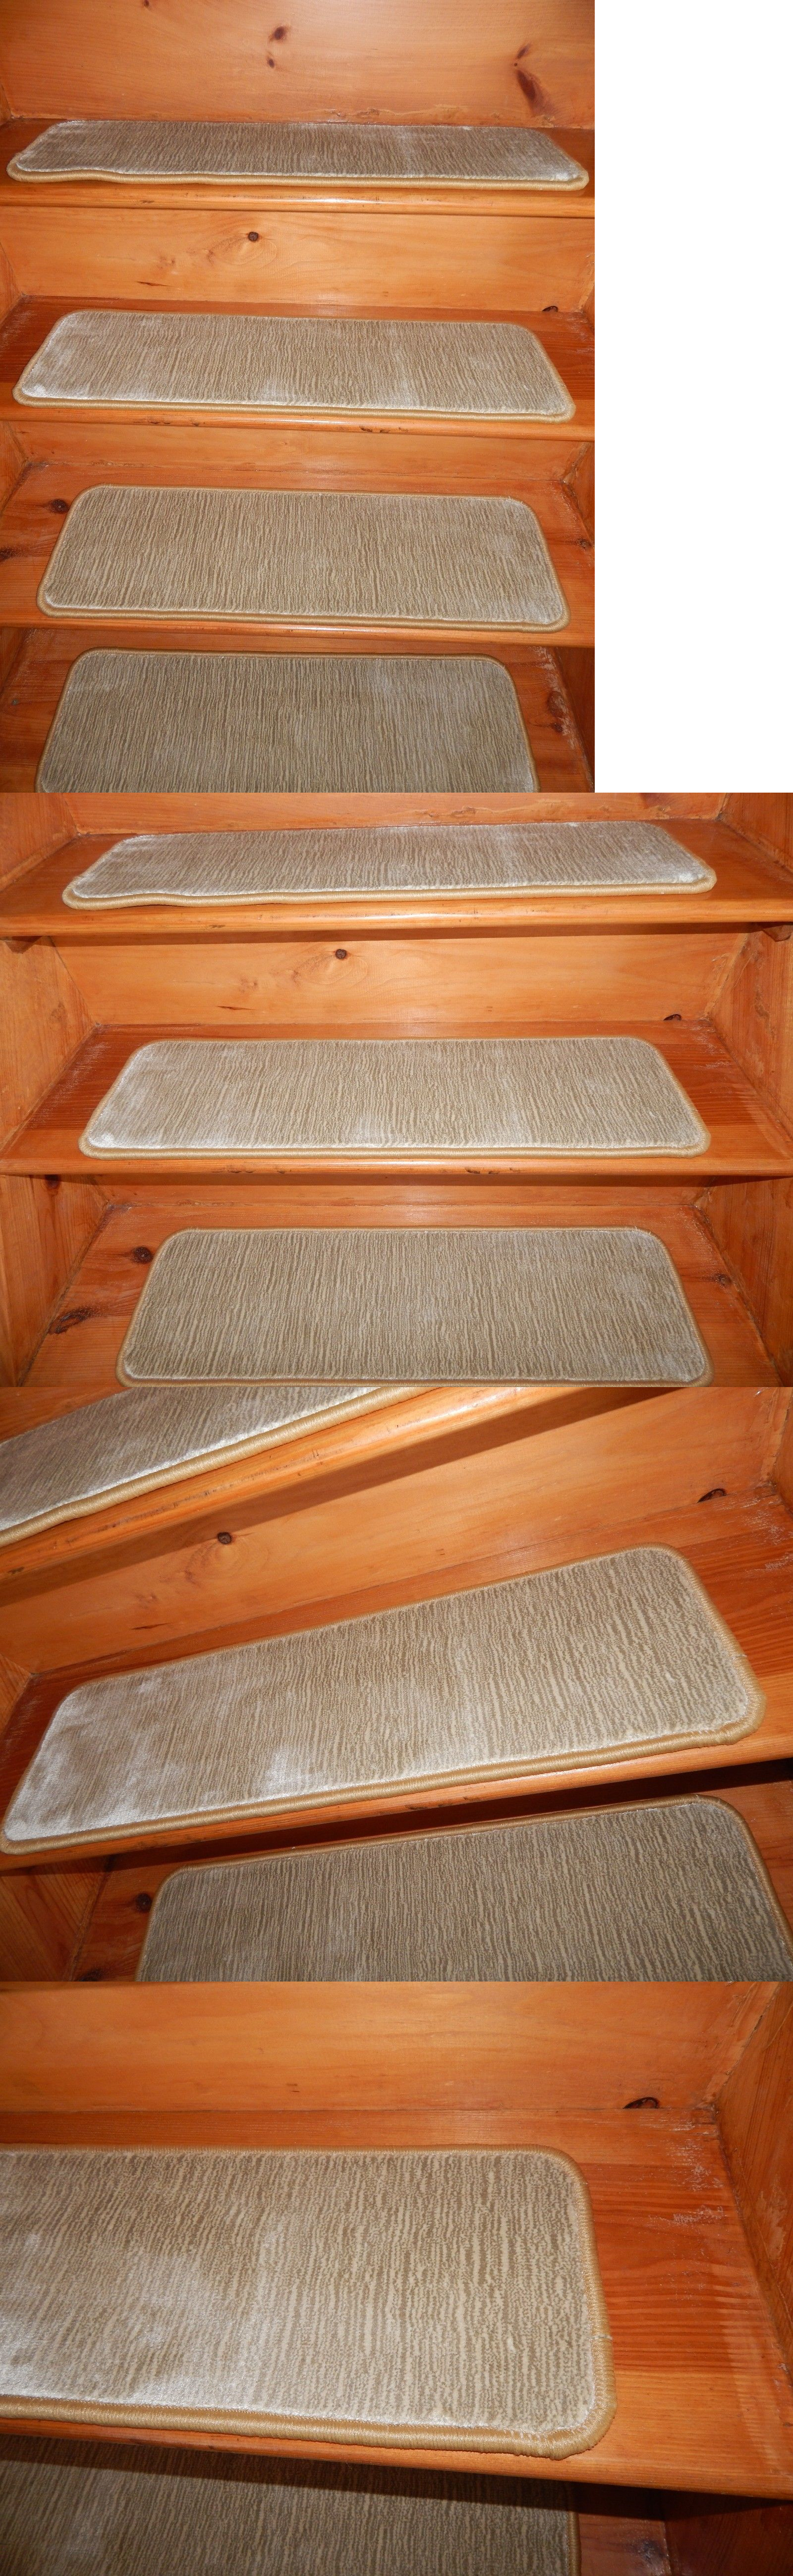 Stair Treads 175517: 13 Step 9 X 30 Landing 24 X 30 Stair Treads Staircase